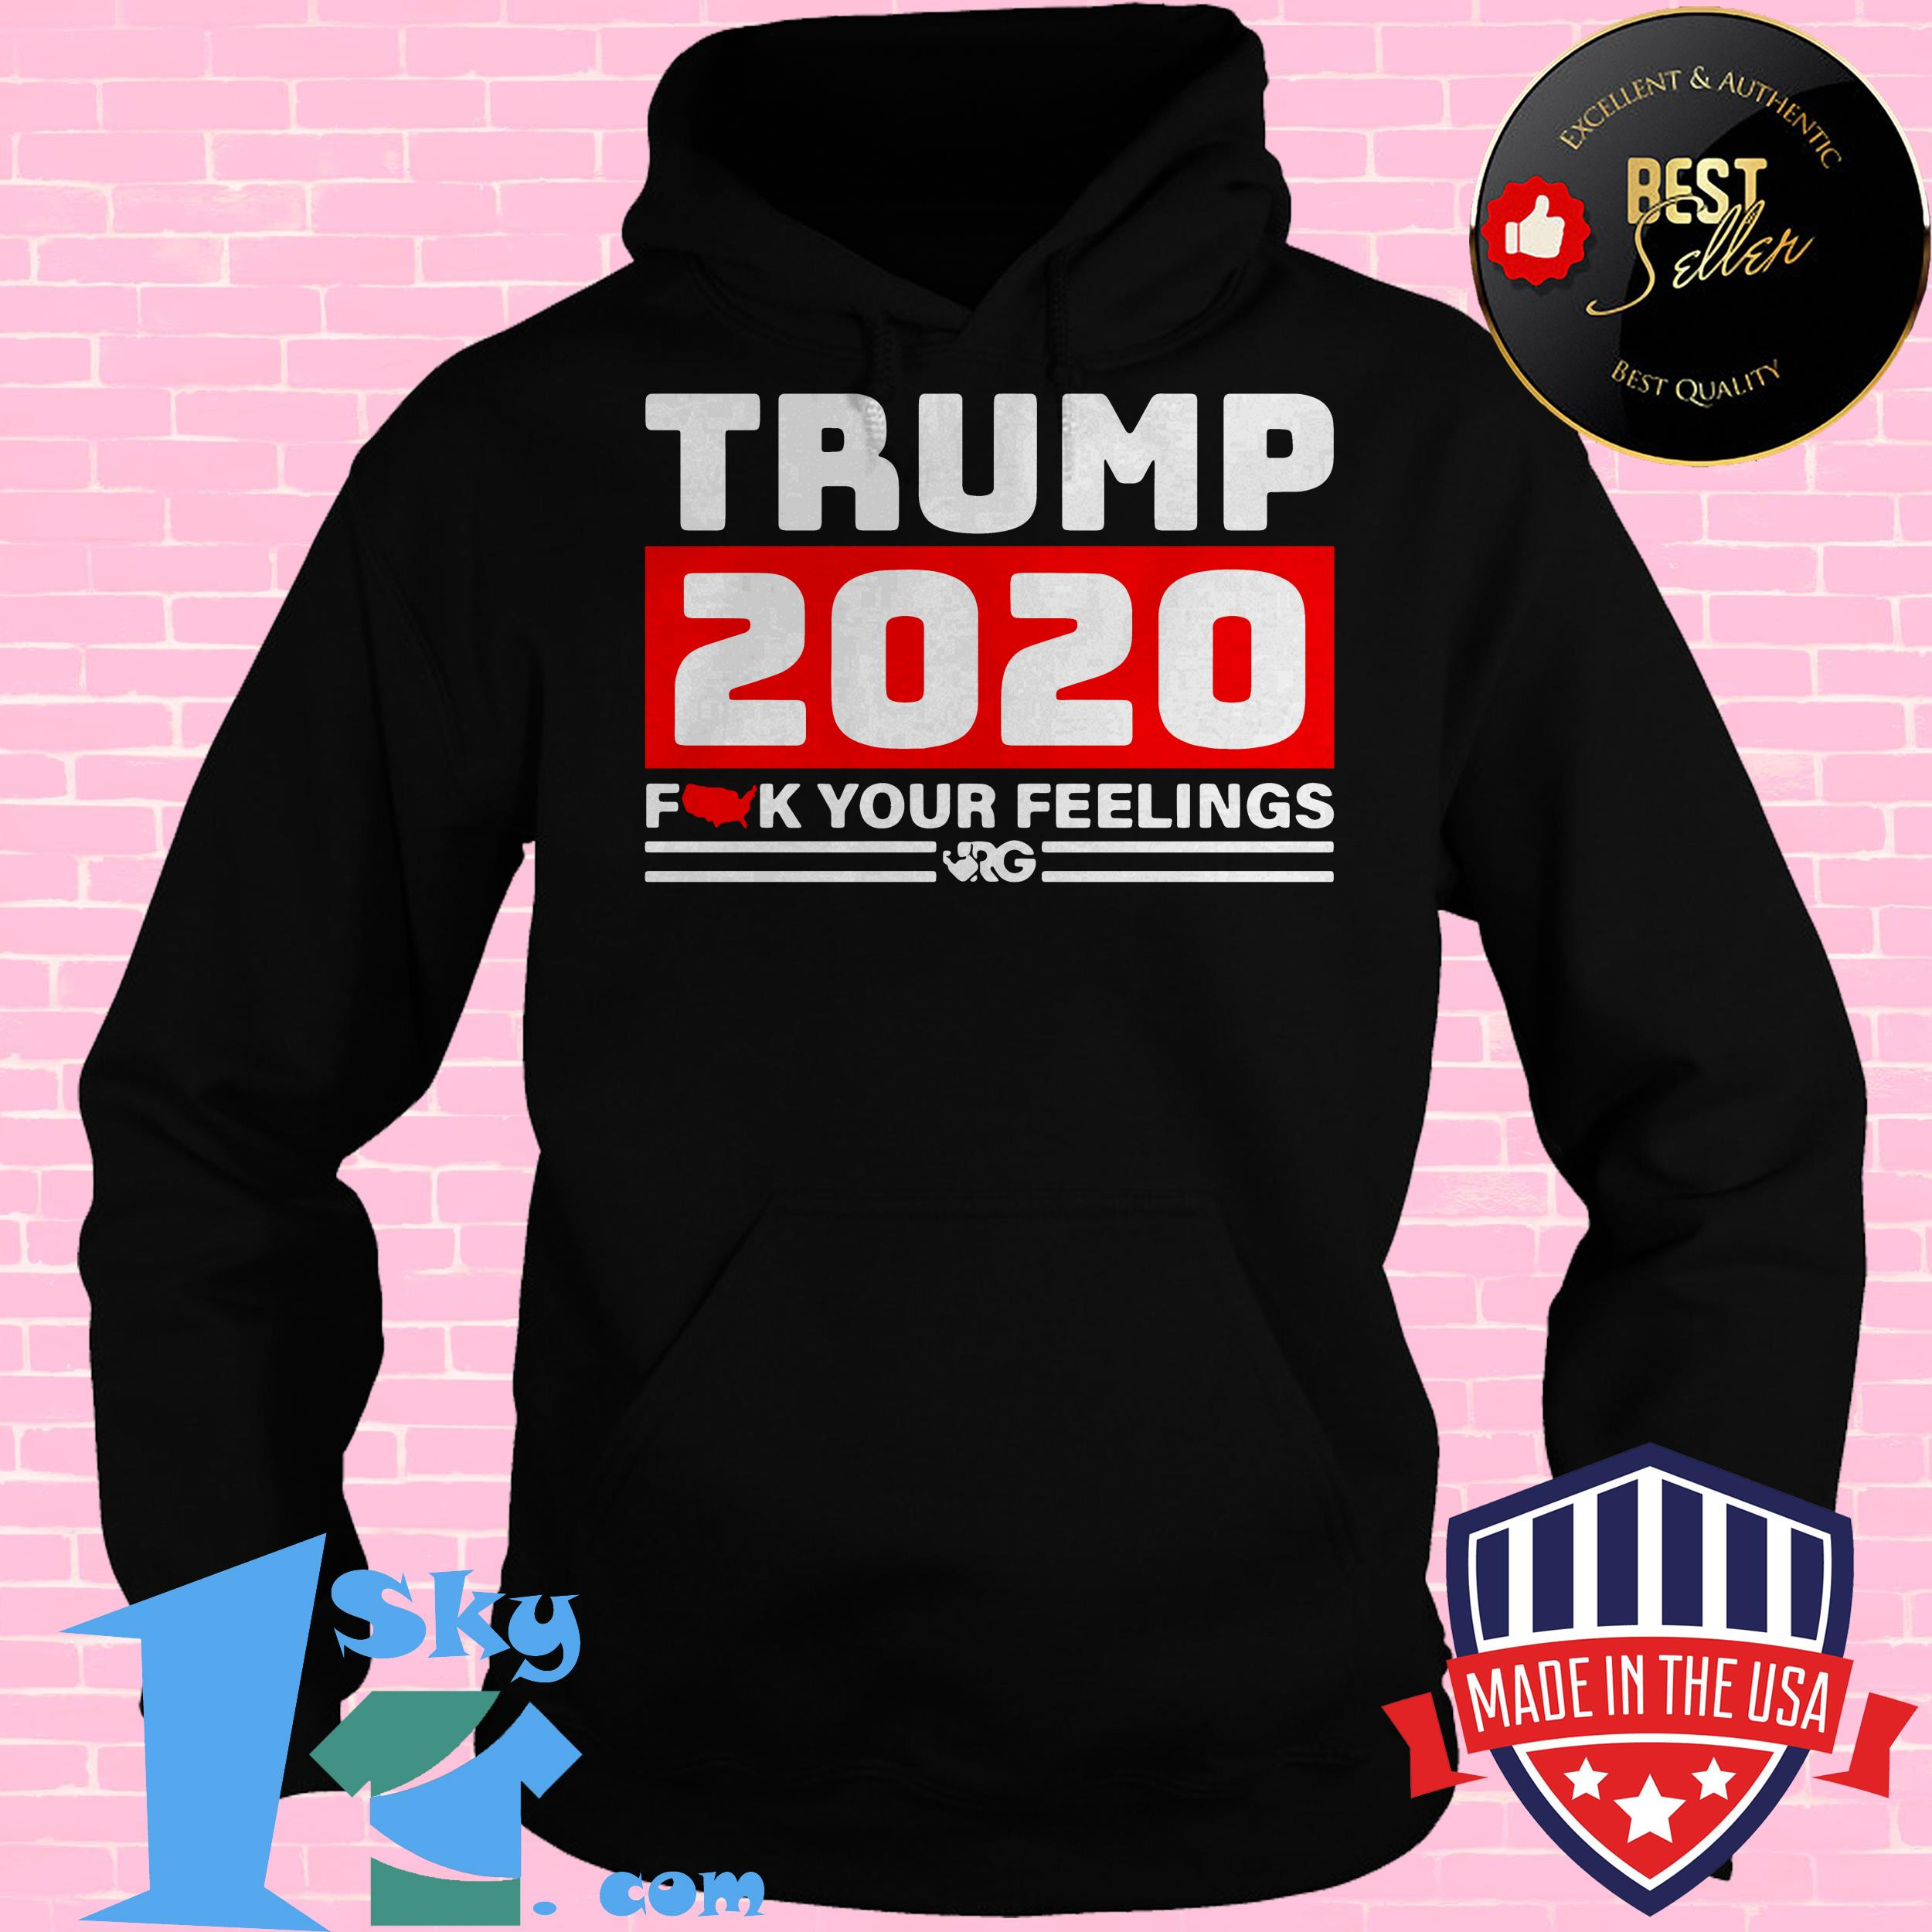 donald trump 2020 f your feelings hoodie - Donald Trump 2020 Fuck Your Feelings shirt